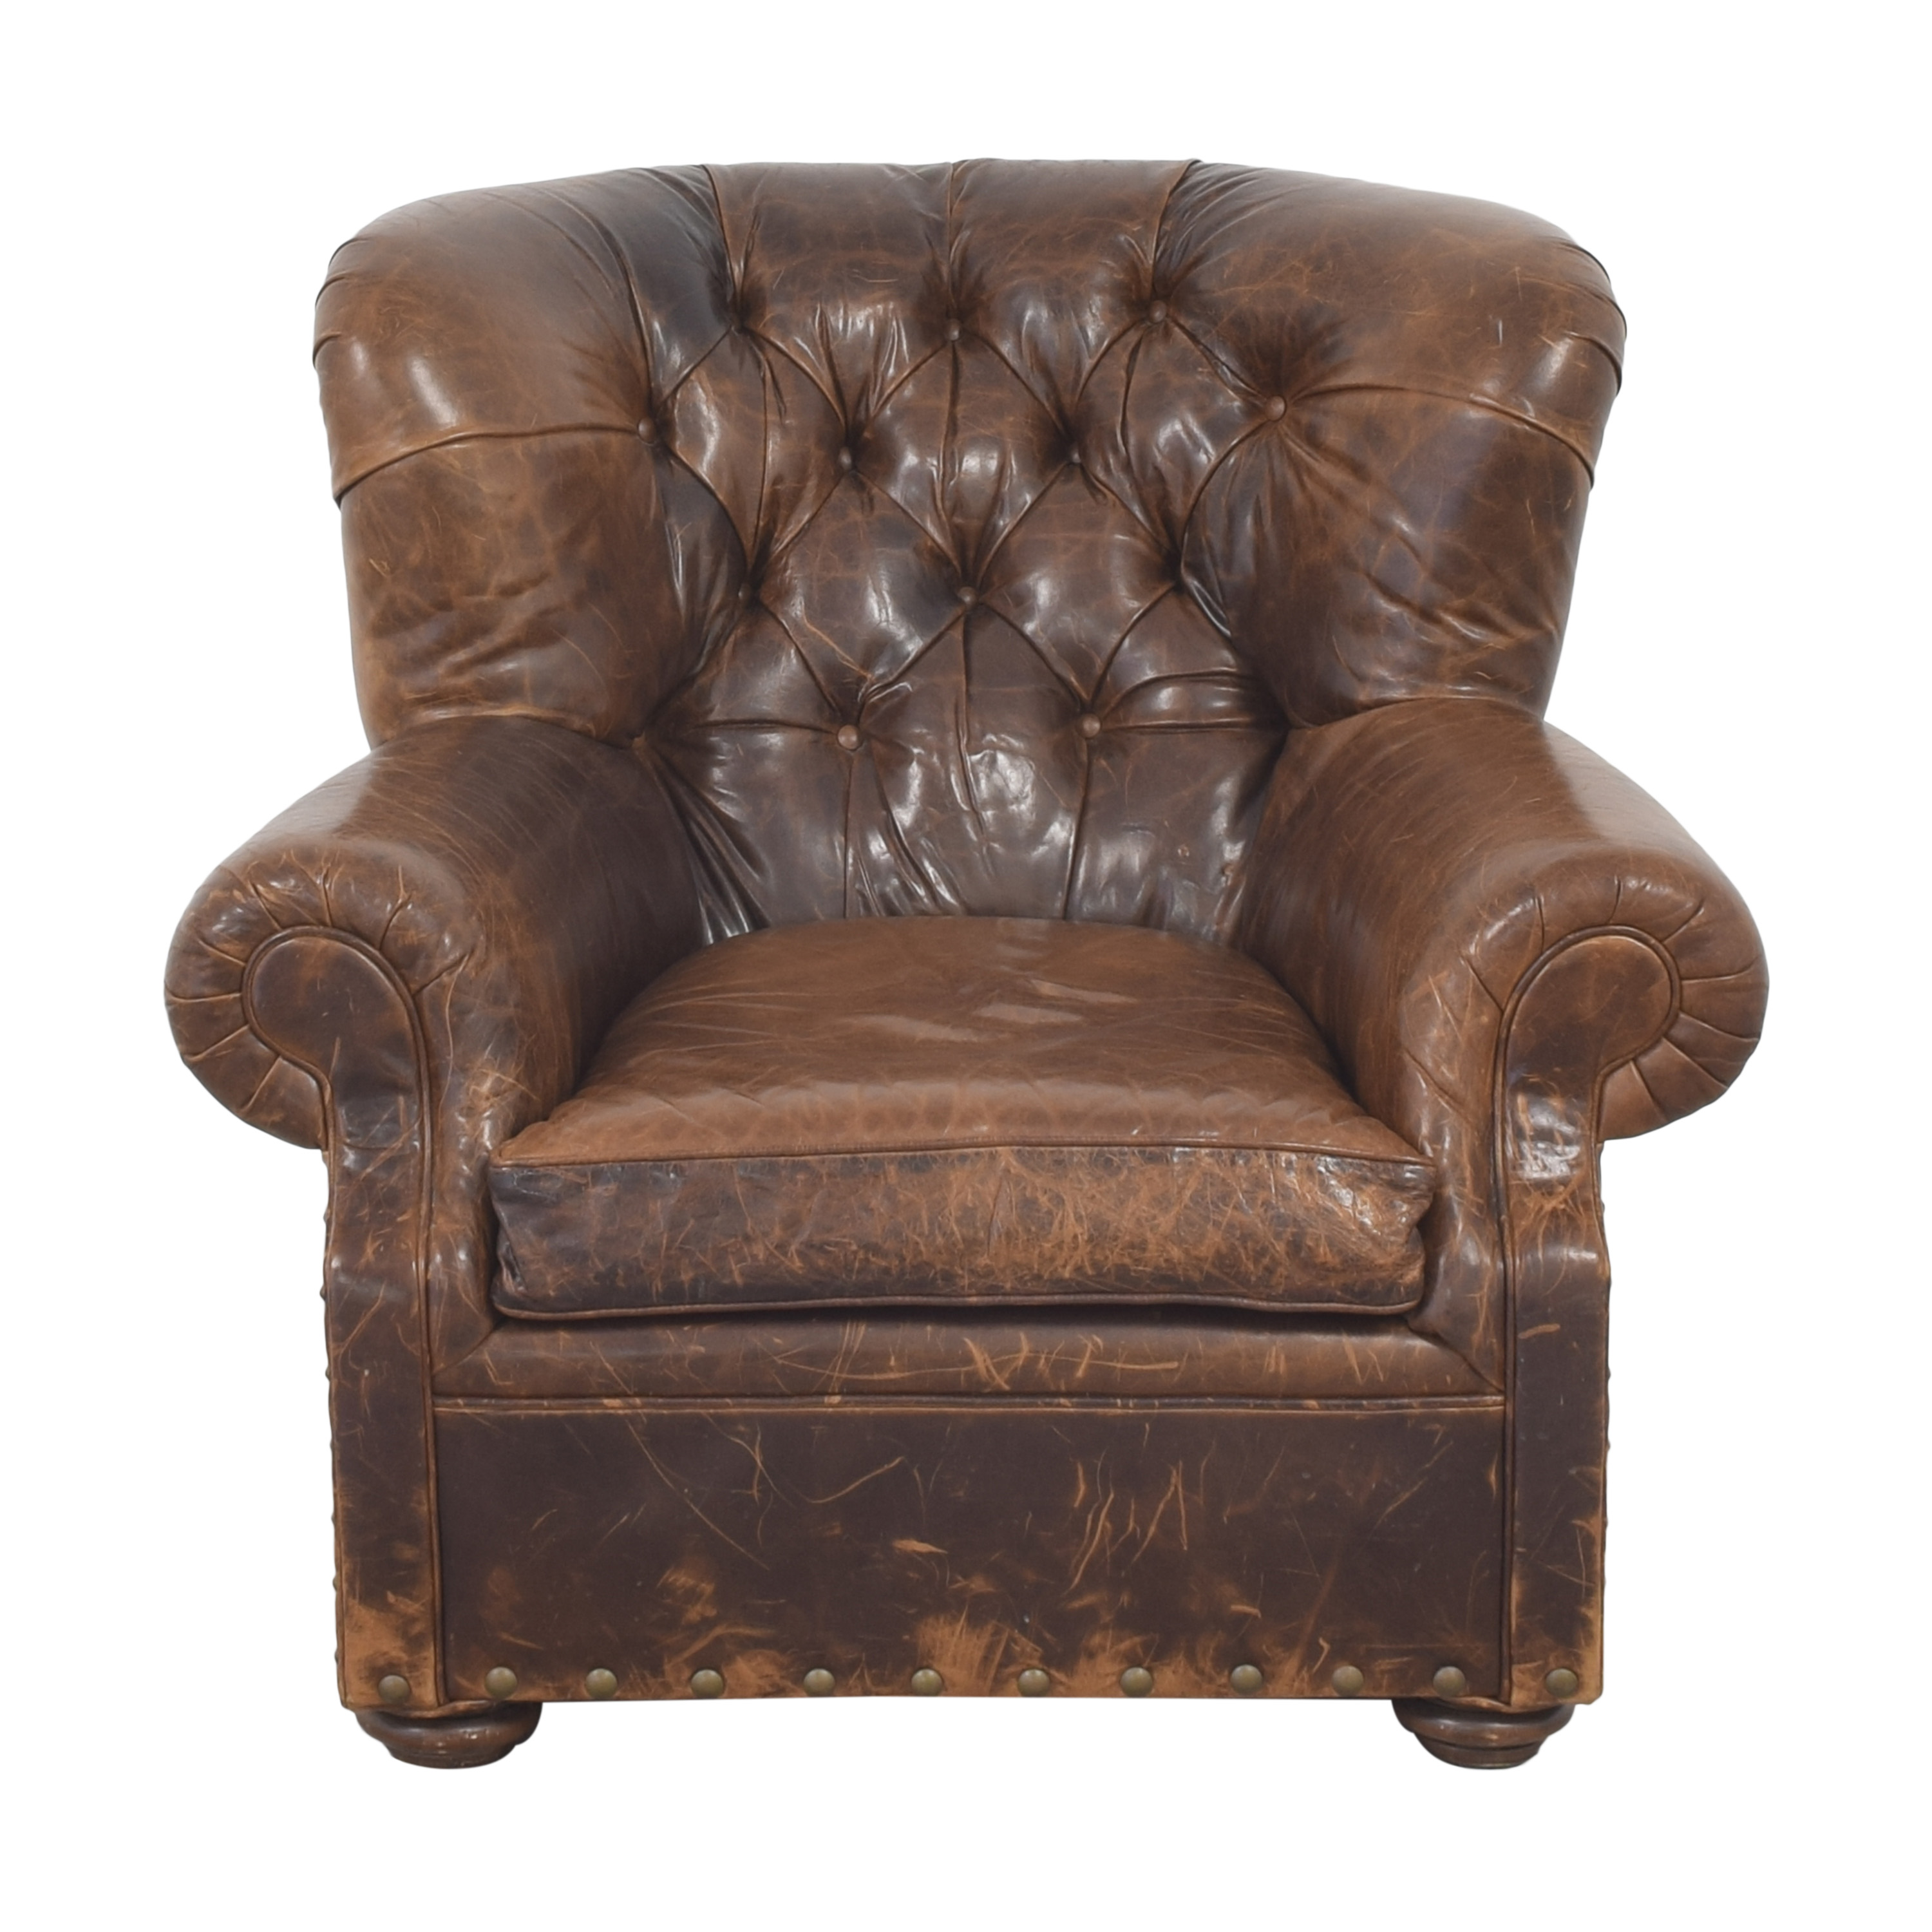 Restoration Hardware Restoration Hardware Tufted Club Chair nj